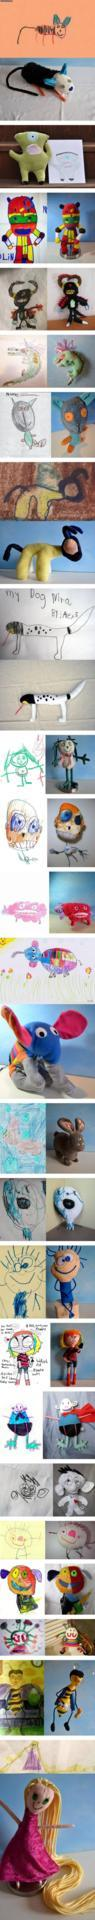 Kid's drawings turned into toys